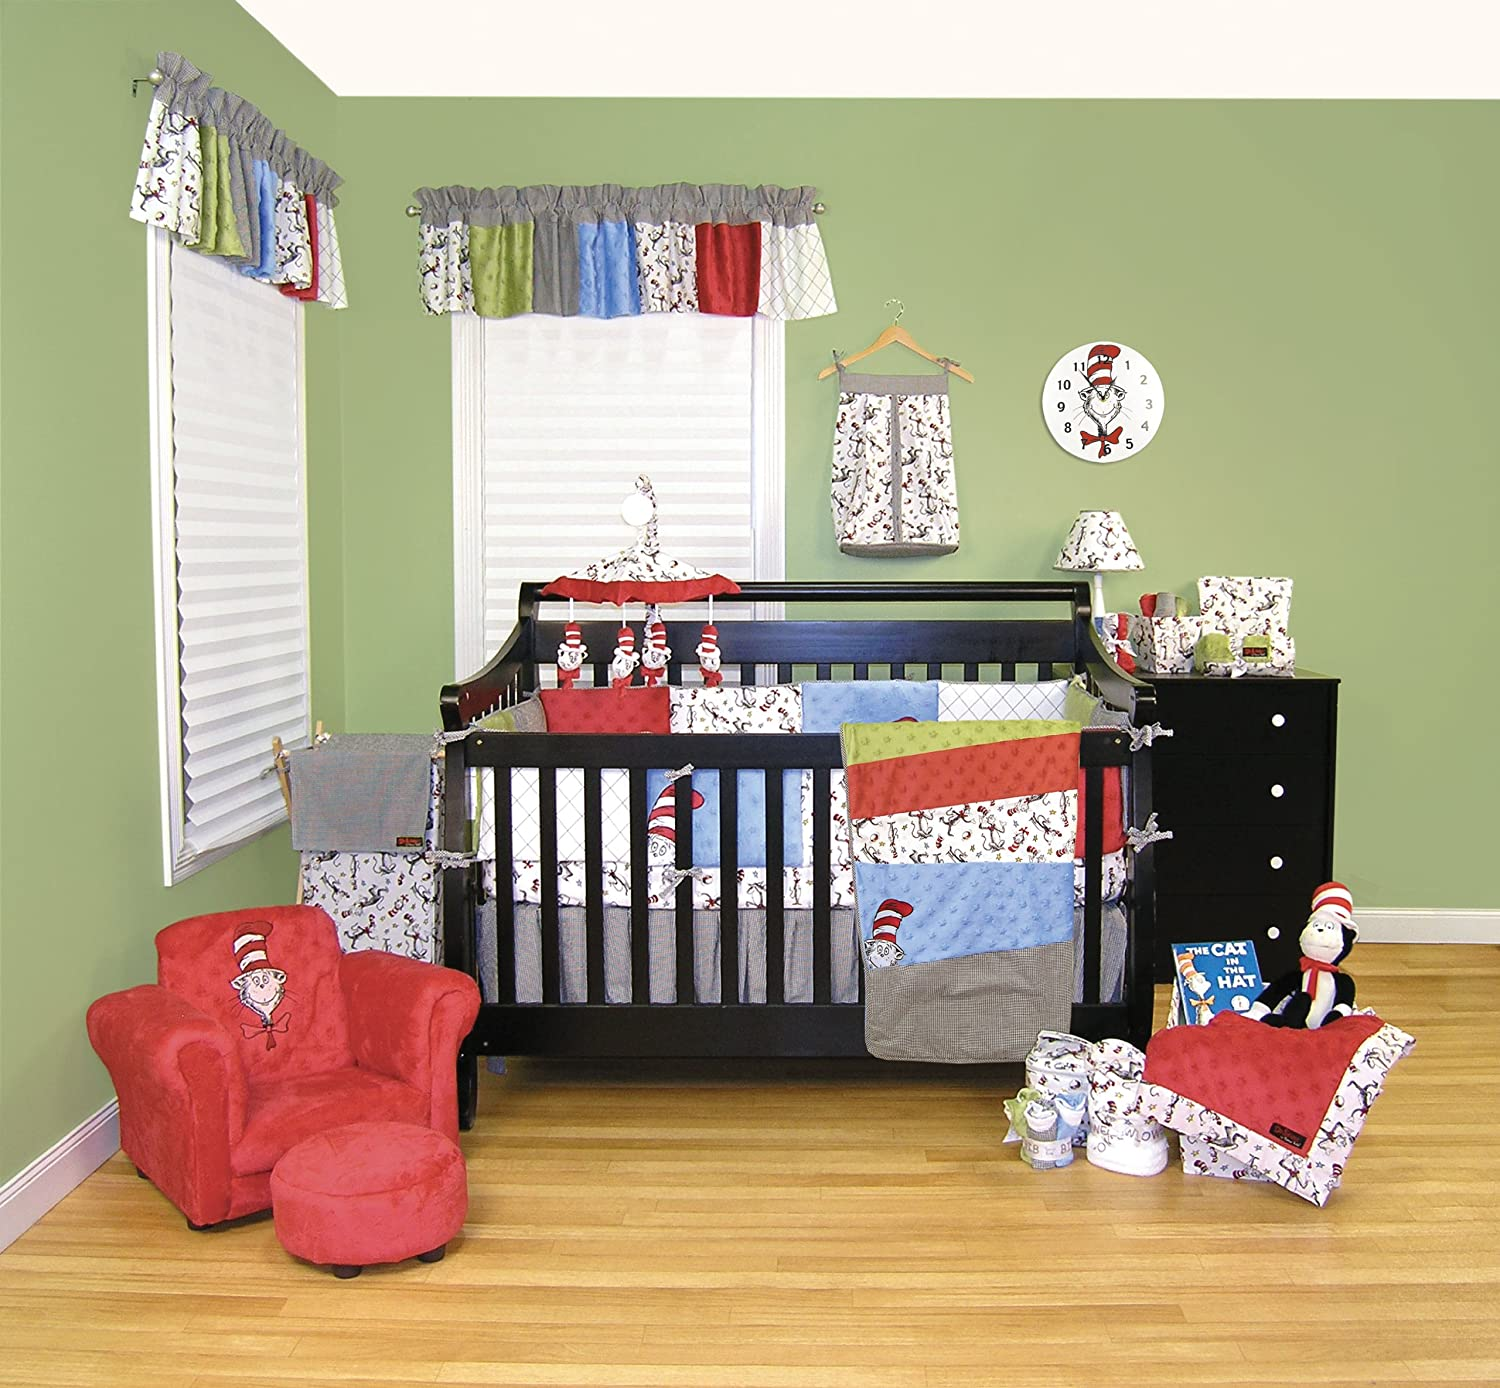 Amazon com   Trend Lab Dr  Seuss Crib Bumpers  Cat In The Hat   Red Baby  Crib Bumpers   Baby. Amazon com   Trend Lab Dr  Seuss Crib Bumpers  Cat In The Hat